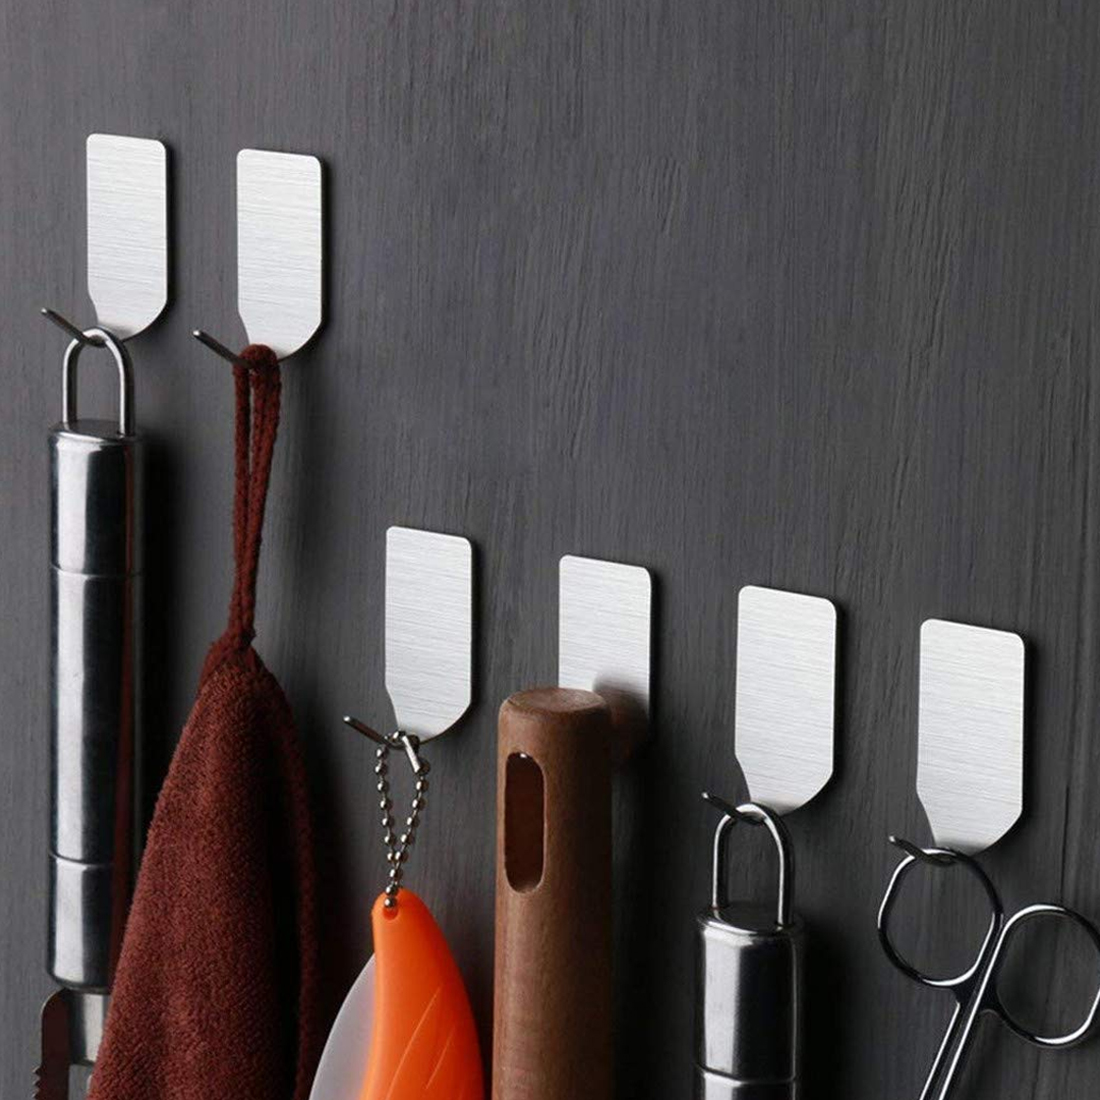 6pcs Adhesive Stainless Steel Towel Hooks Family Robe Hanging Hooks Hats Bag Family Robe Hats Bag Key Adhesive Wall Hanger